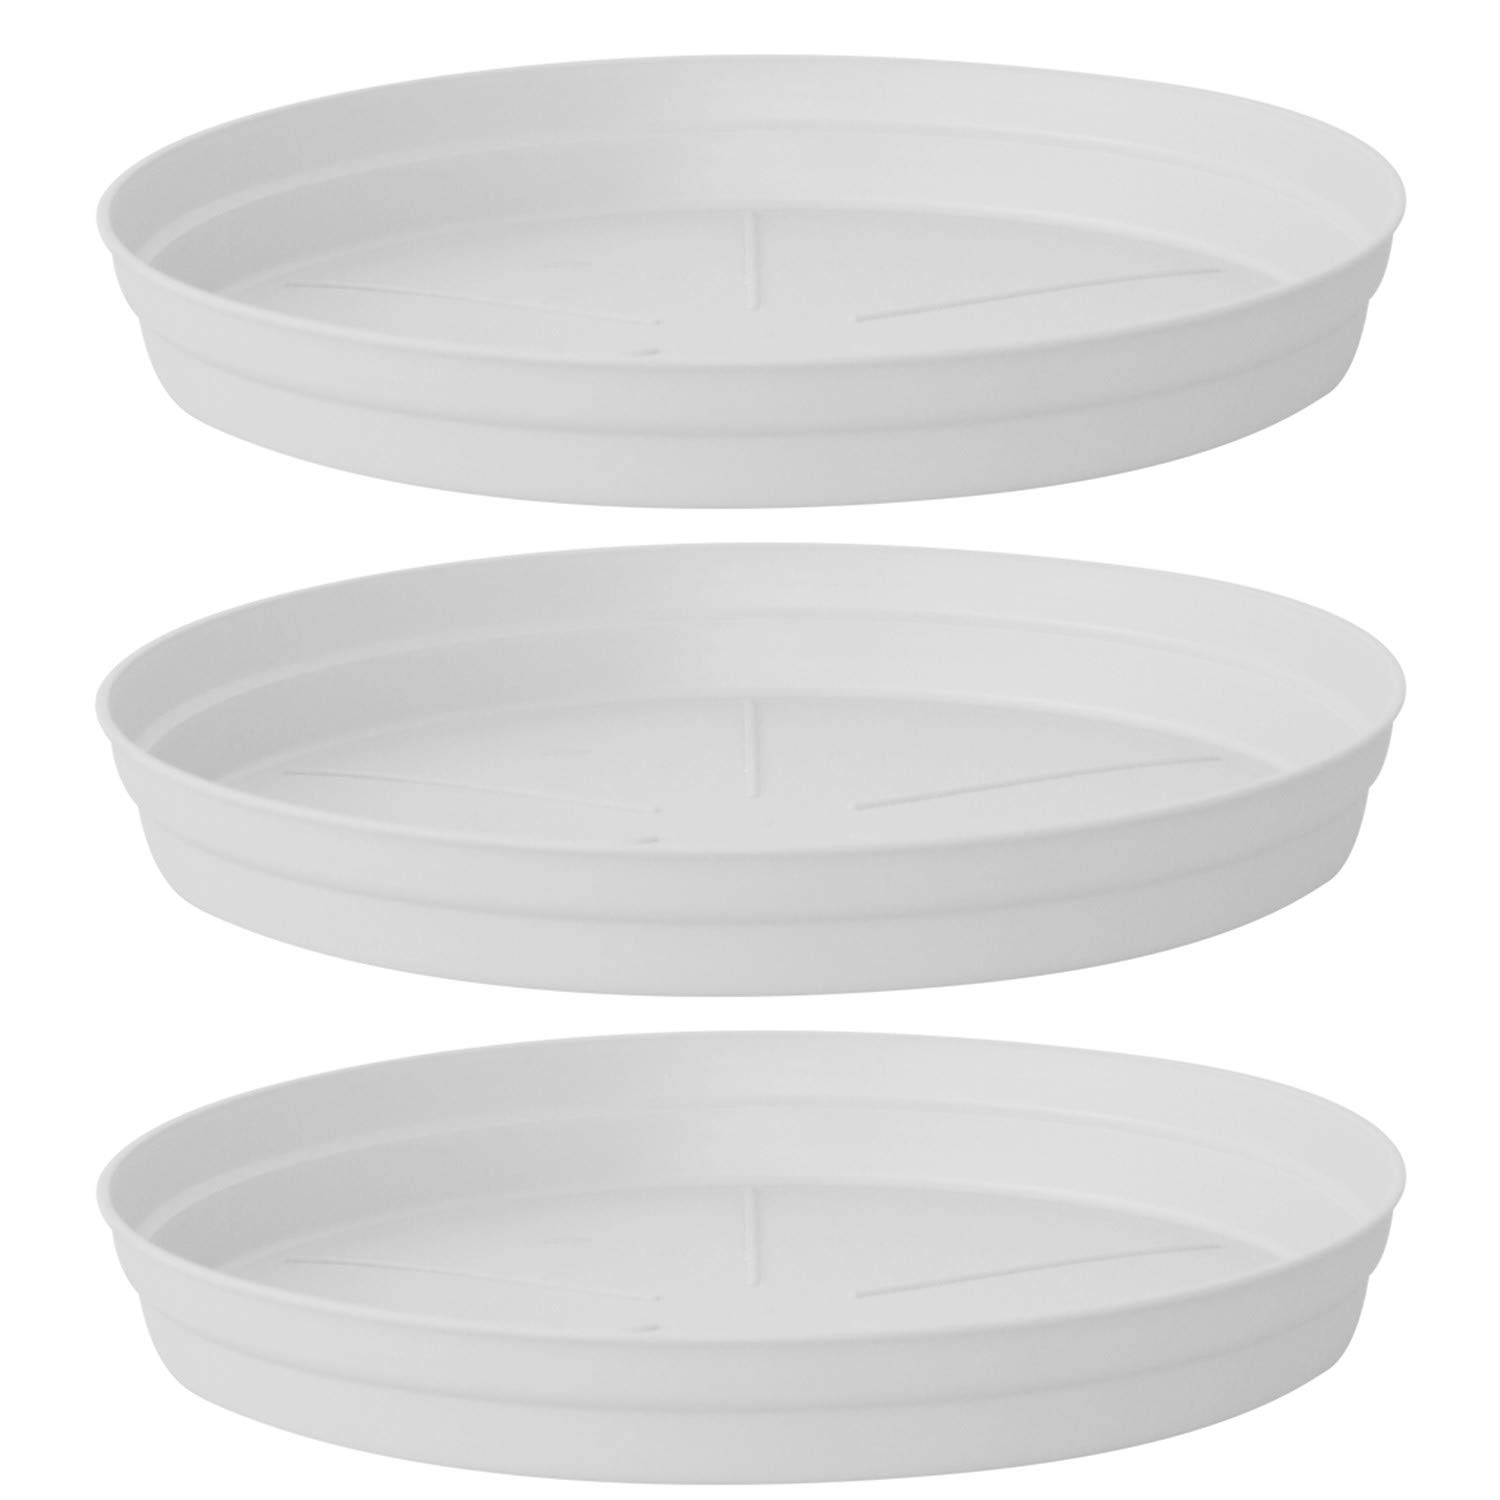 ALMI Carmel Plastic Plant Saucer Drip Tray 12-inch [3 Pack] Ideal for 19-inch Round Base Planter - for Plants, Flowers, Pot, Indoor, Outdoor - White by ALMI